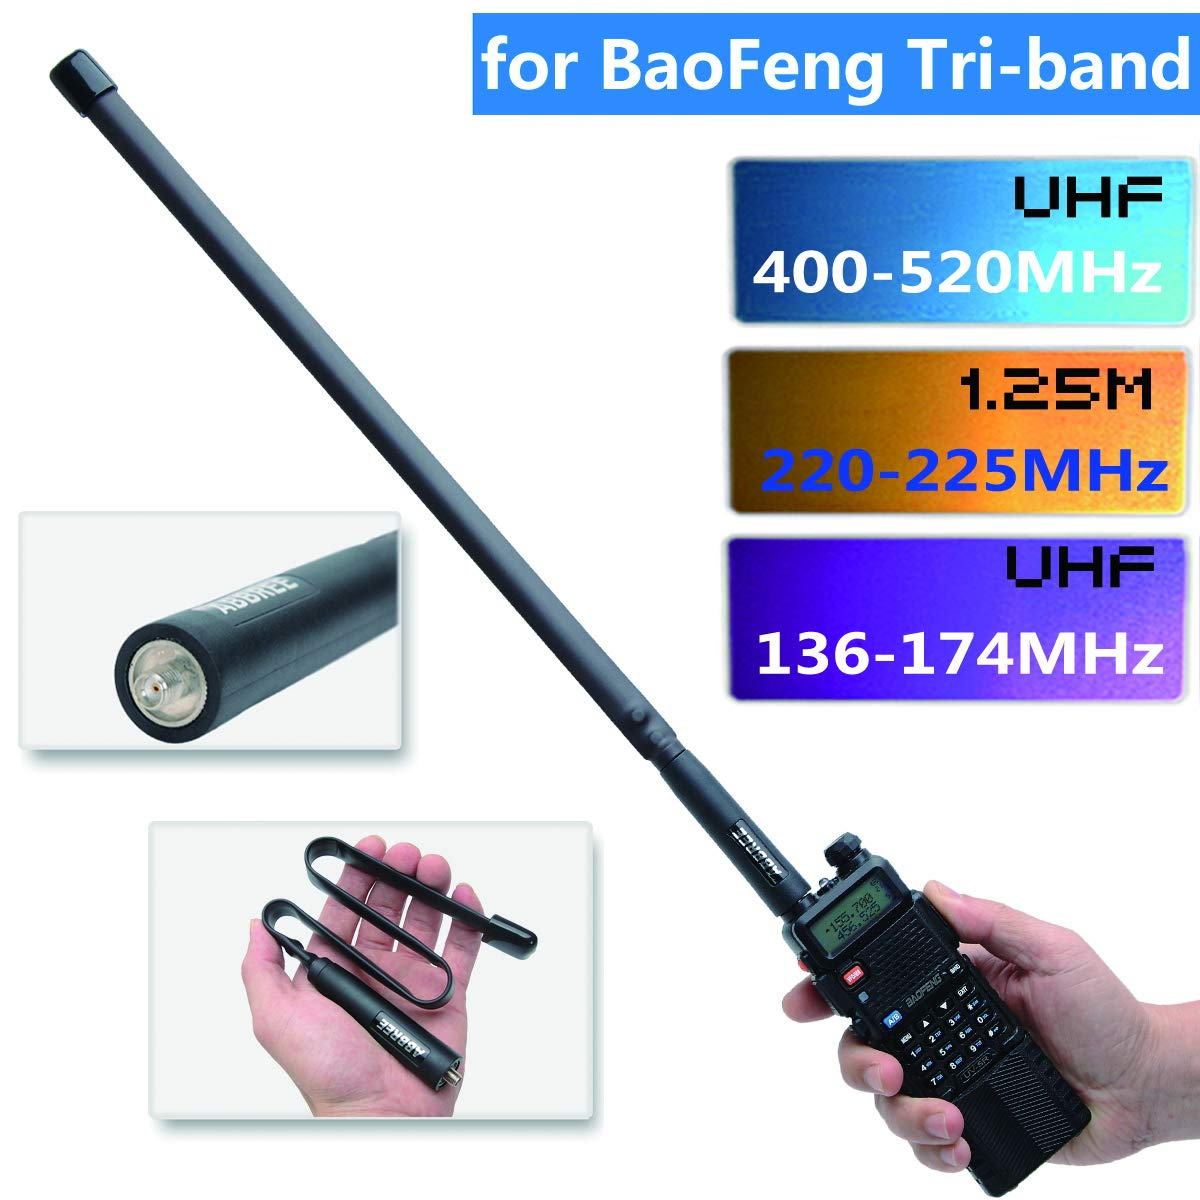 UV-82X3 UV-5RX3 BF-R3 ABBREE Antenne Tactique tri-Bande 144//222//435 MHz 18,8 Pouces SMA Femelle pour Baofeng X UV-82T BTECH UV-5X3 Radio bidirectionnelle 42.5inch